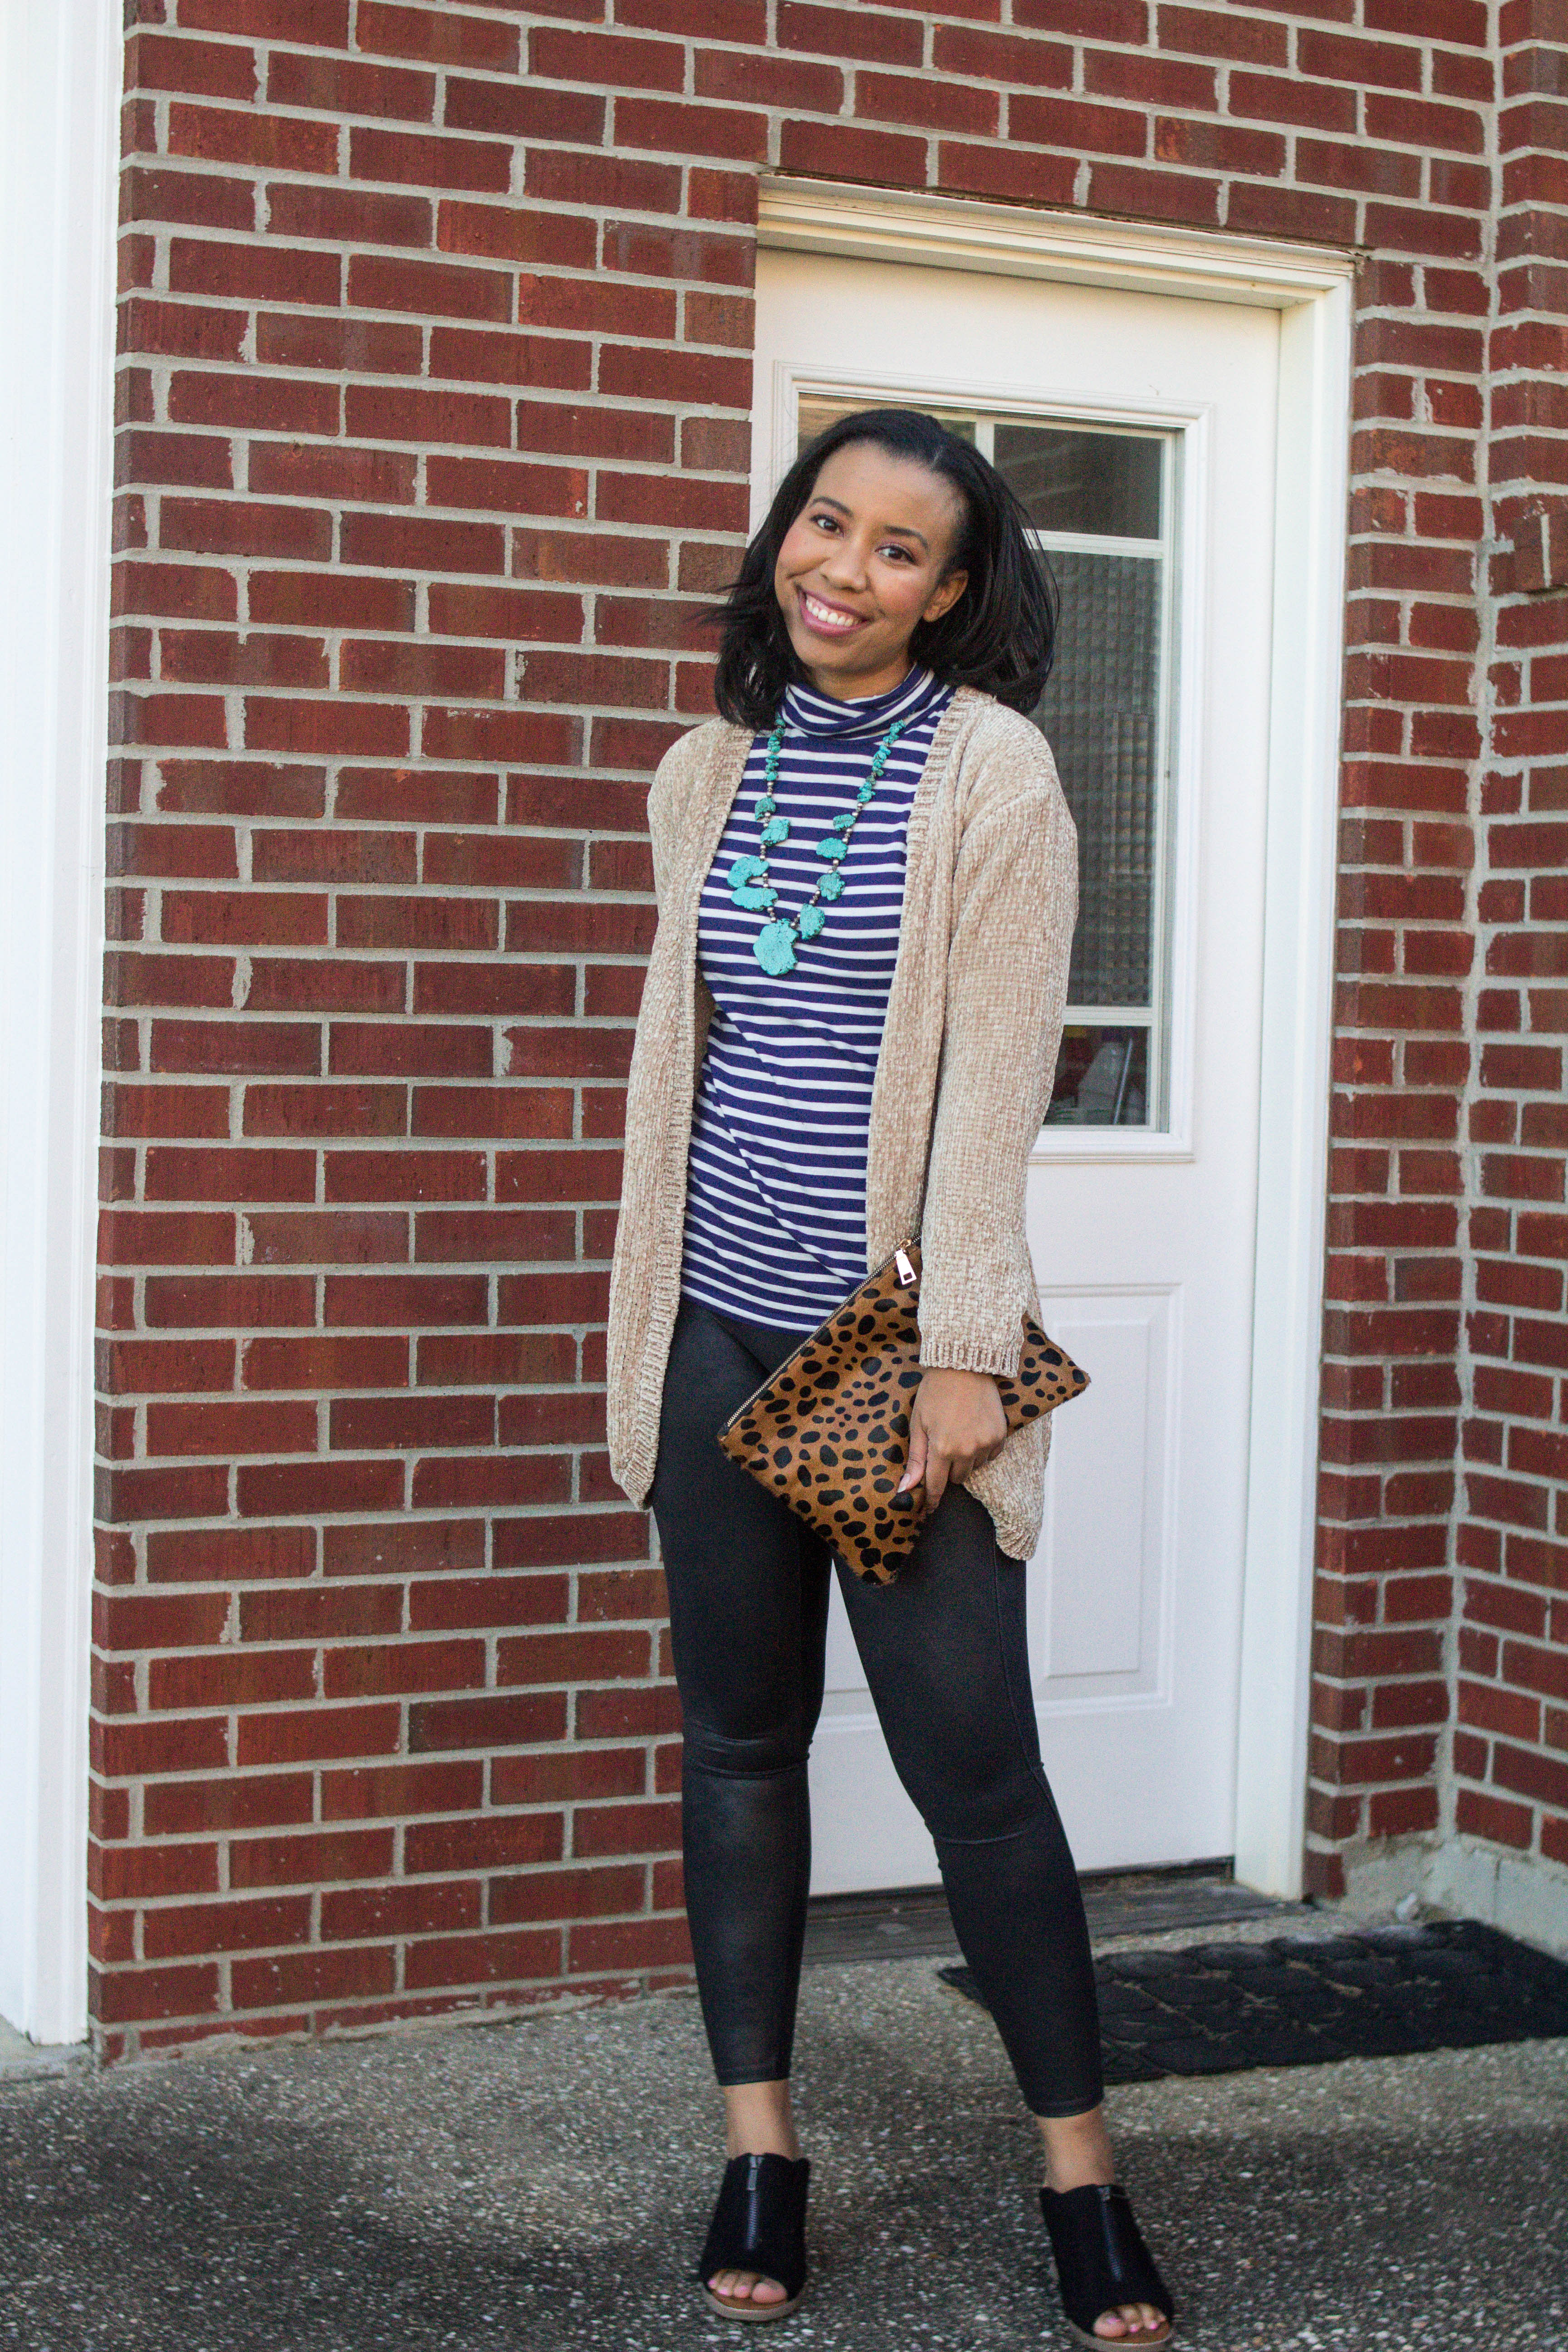 Popular Louisville blogger, What Nicole Wore, shows how to take ten wardrobe staples and create twenty fall outfits with a fall capsule wardrobe. // faux leather leggings, black leggings outfit ideas, spanx leggings best leather leggings, gordmans outfit finds, striped turtleneck outfit inspiration, chenille sweater look, chenille cardigan outfit